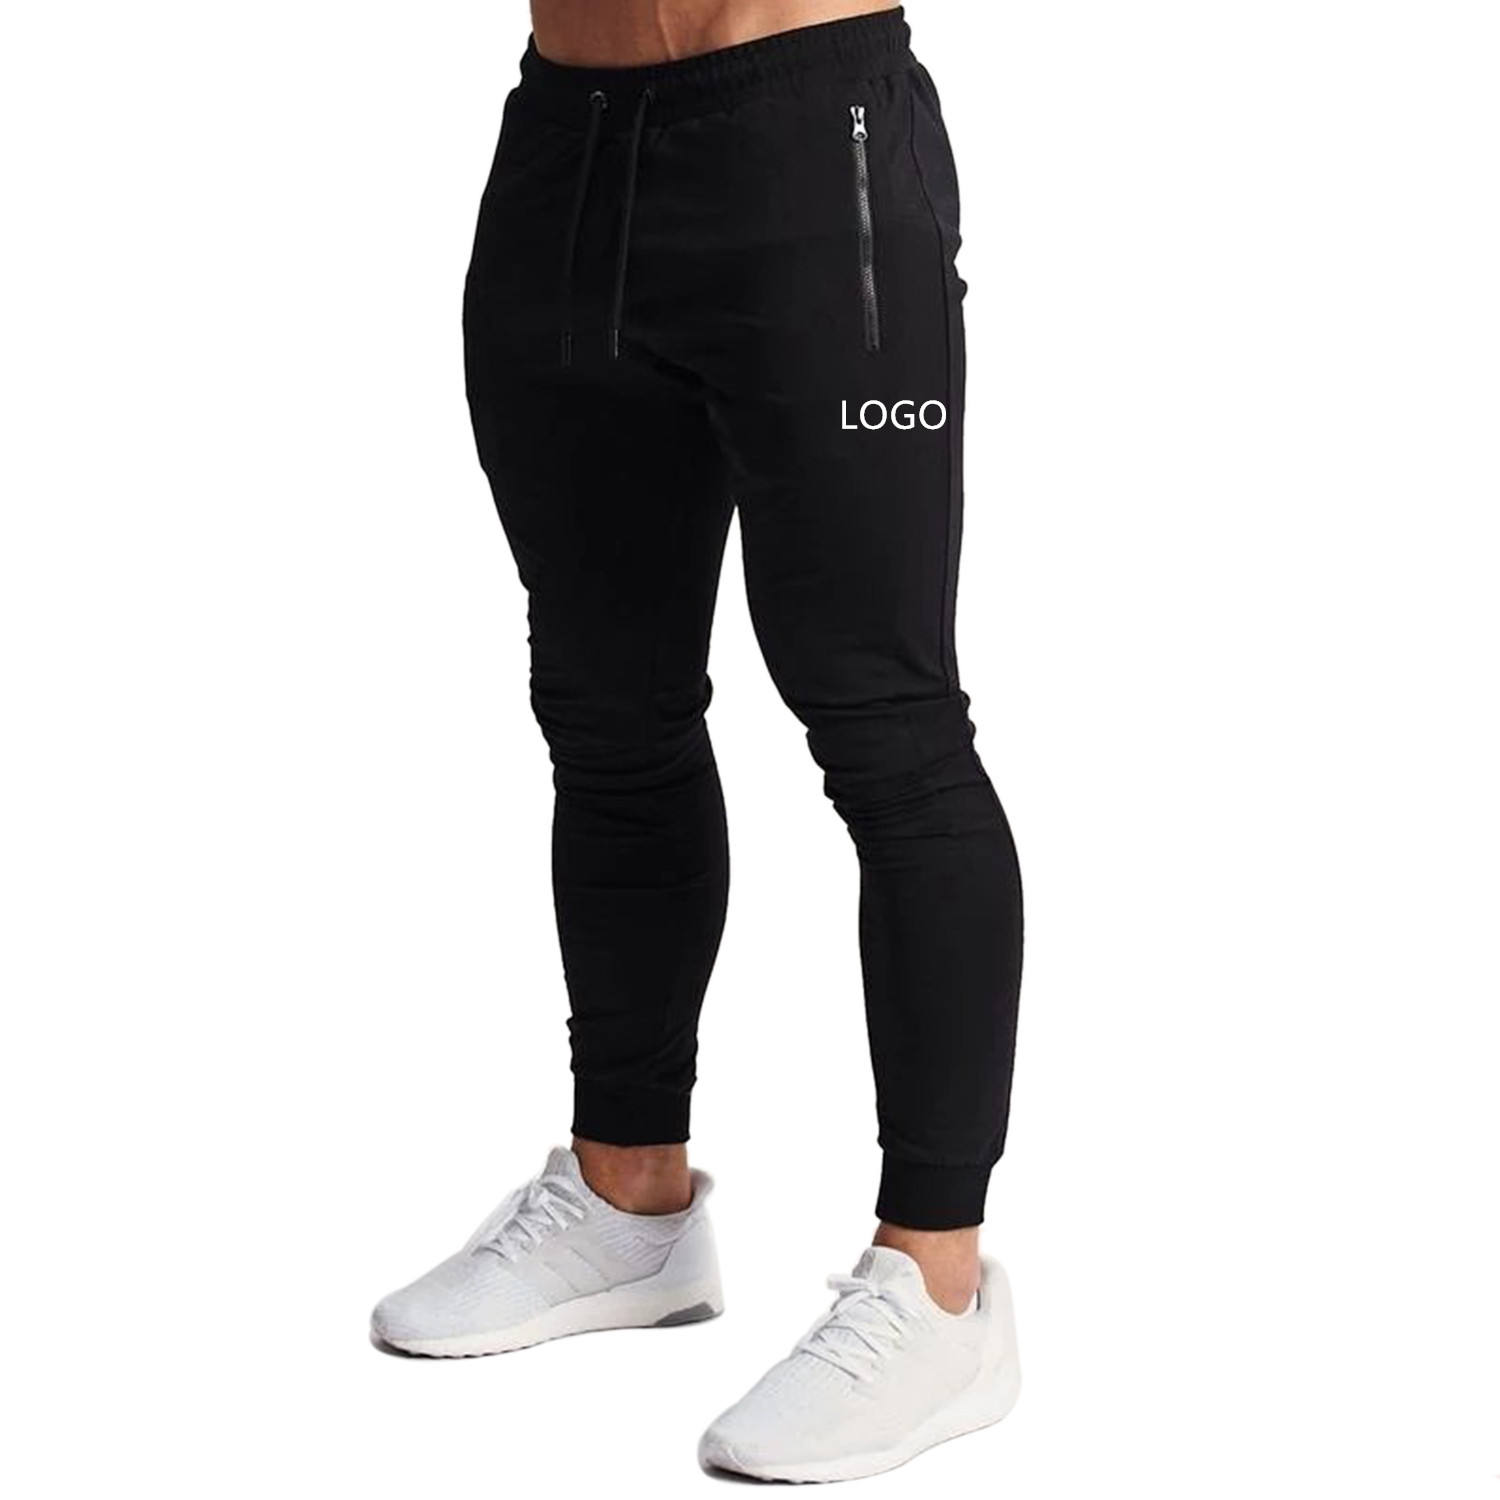 High Quality Private Label Khaki Polyester Mens Fashion Slim Fit Jogger Sweatpants